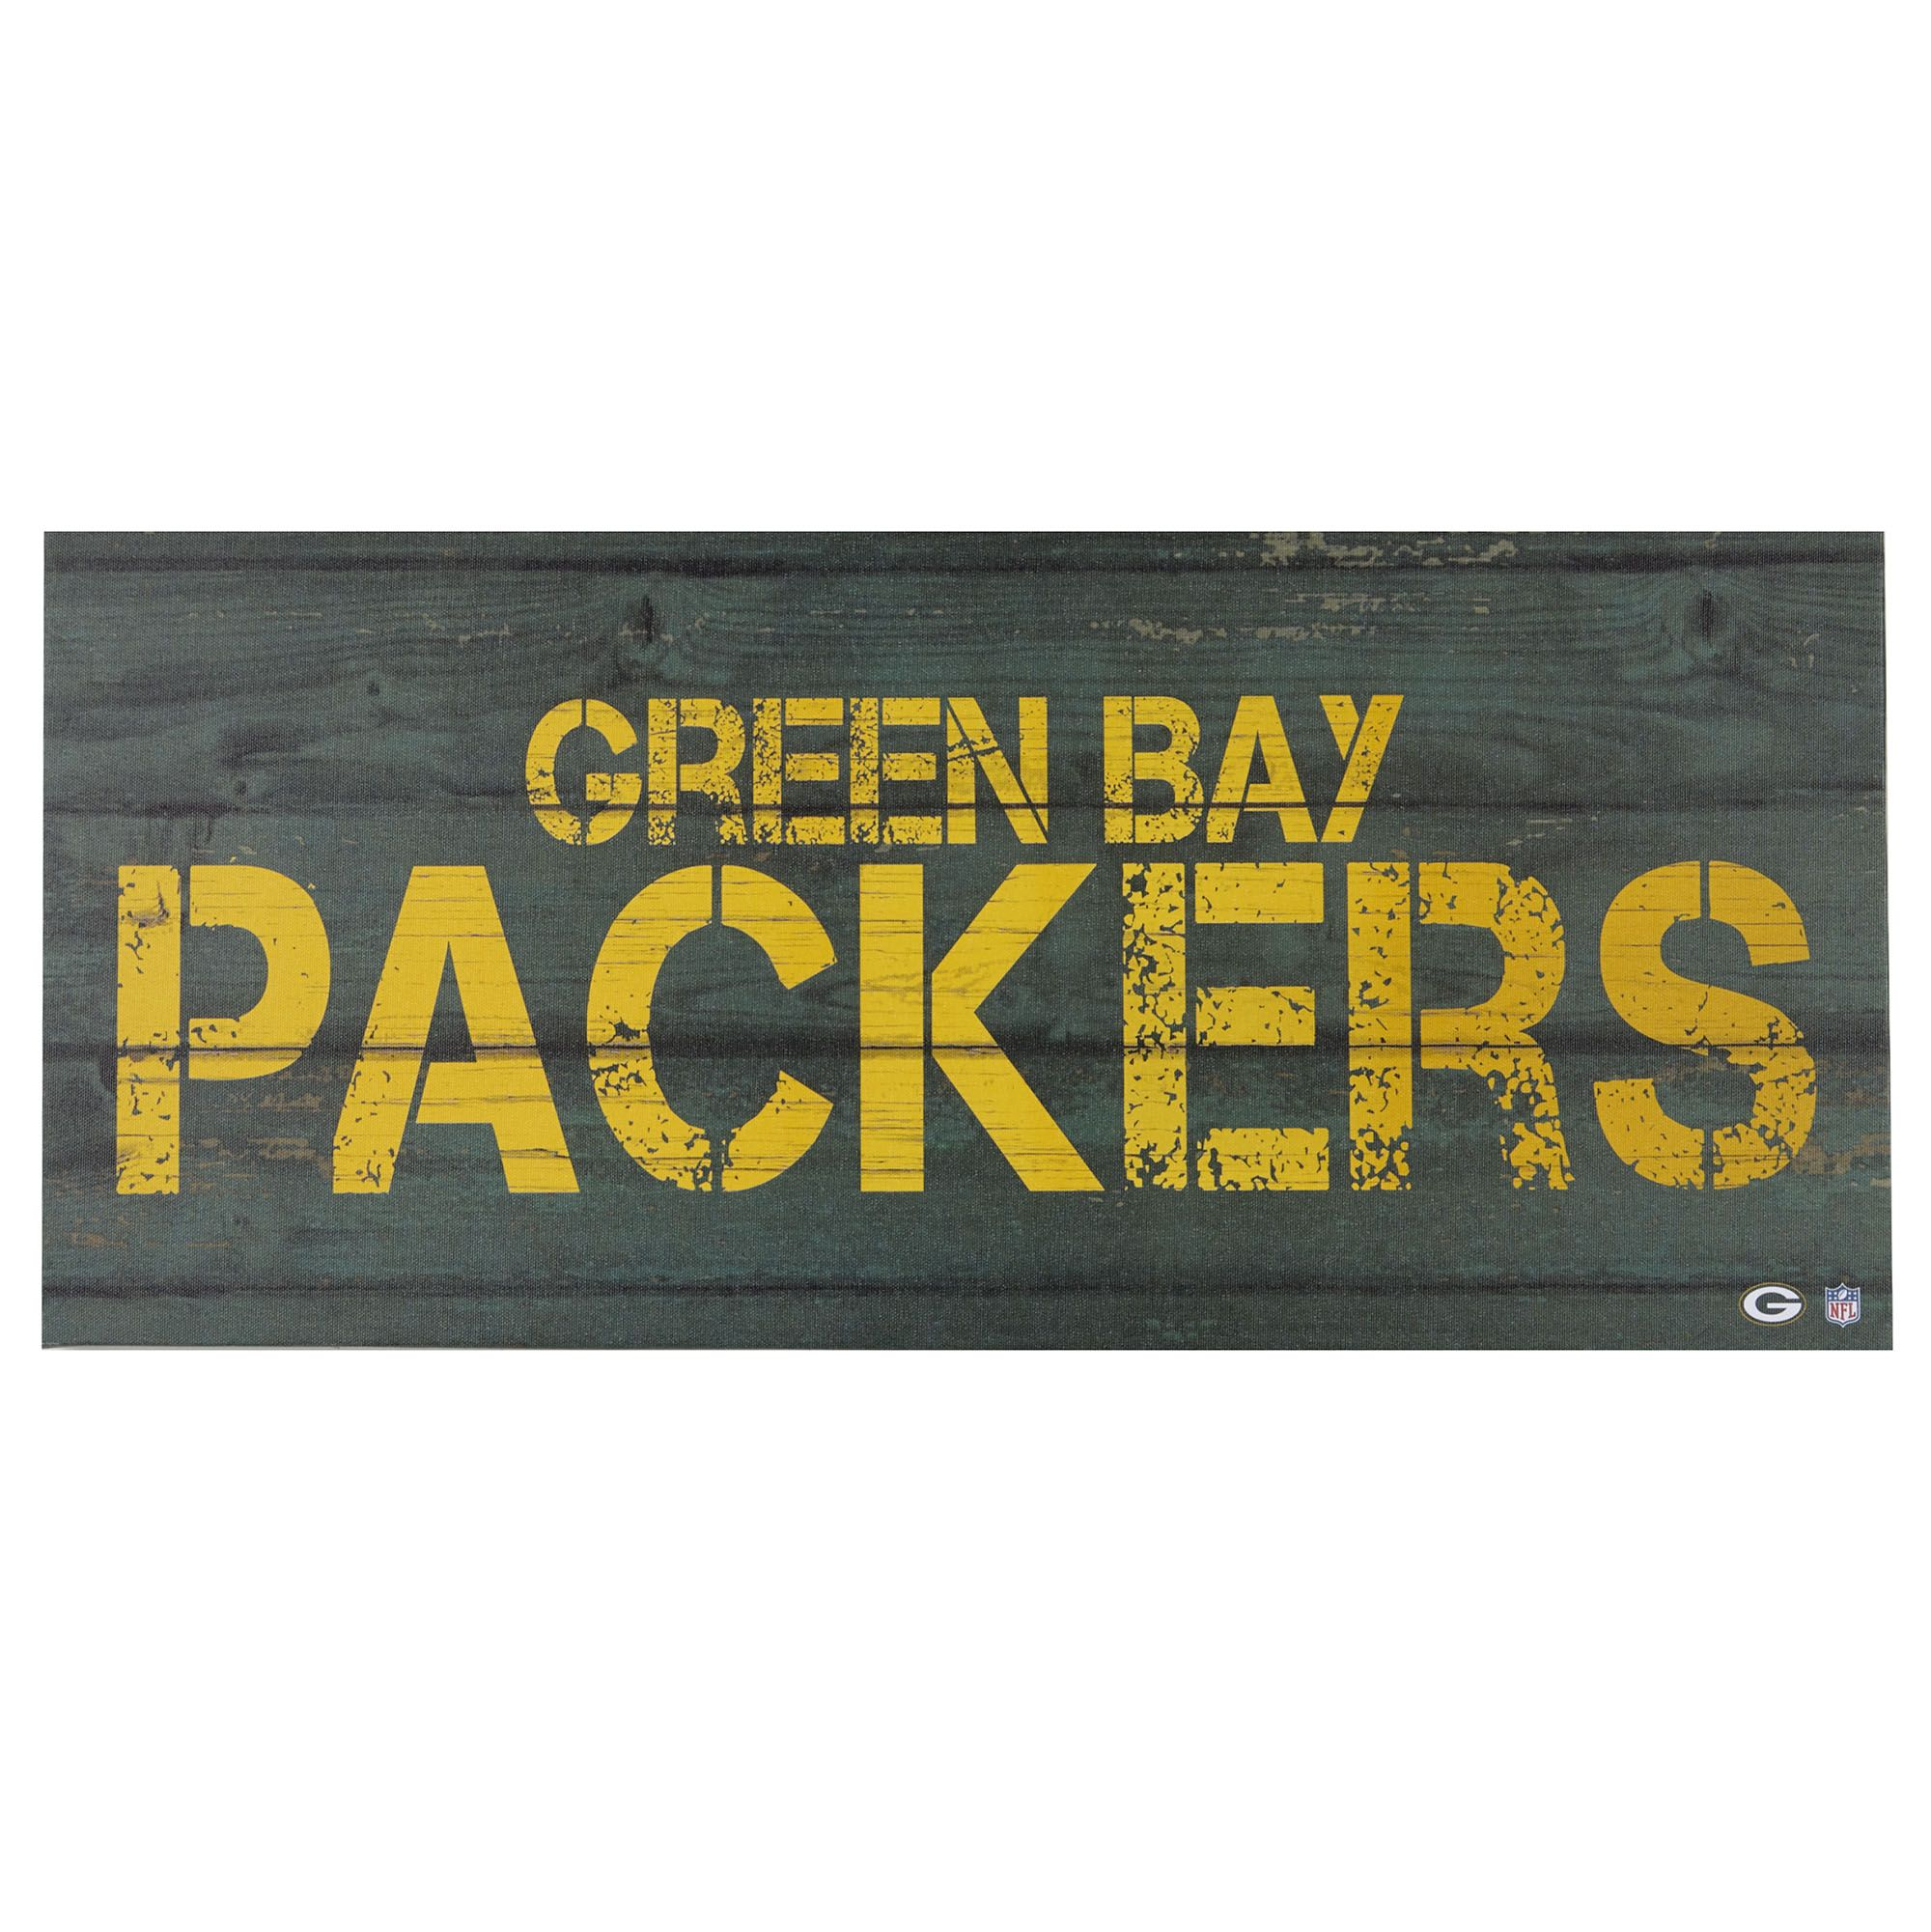 Green Bay Packers Wall Decor - Home Decorating Ideas